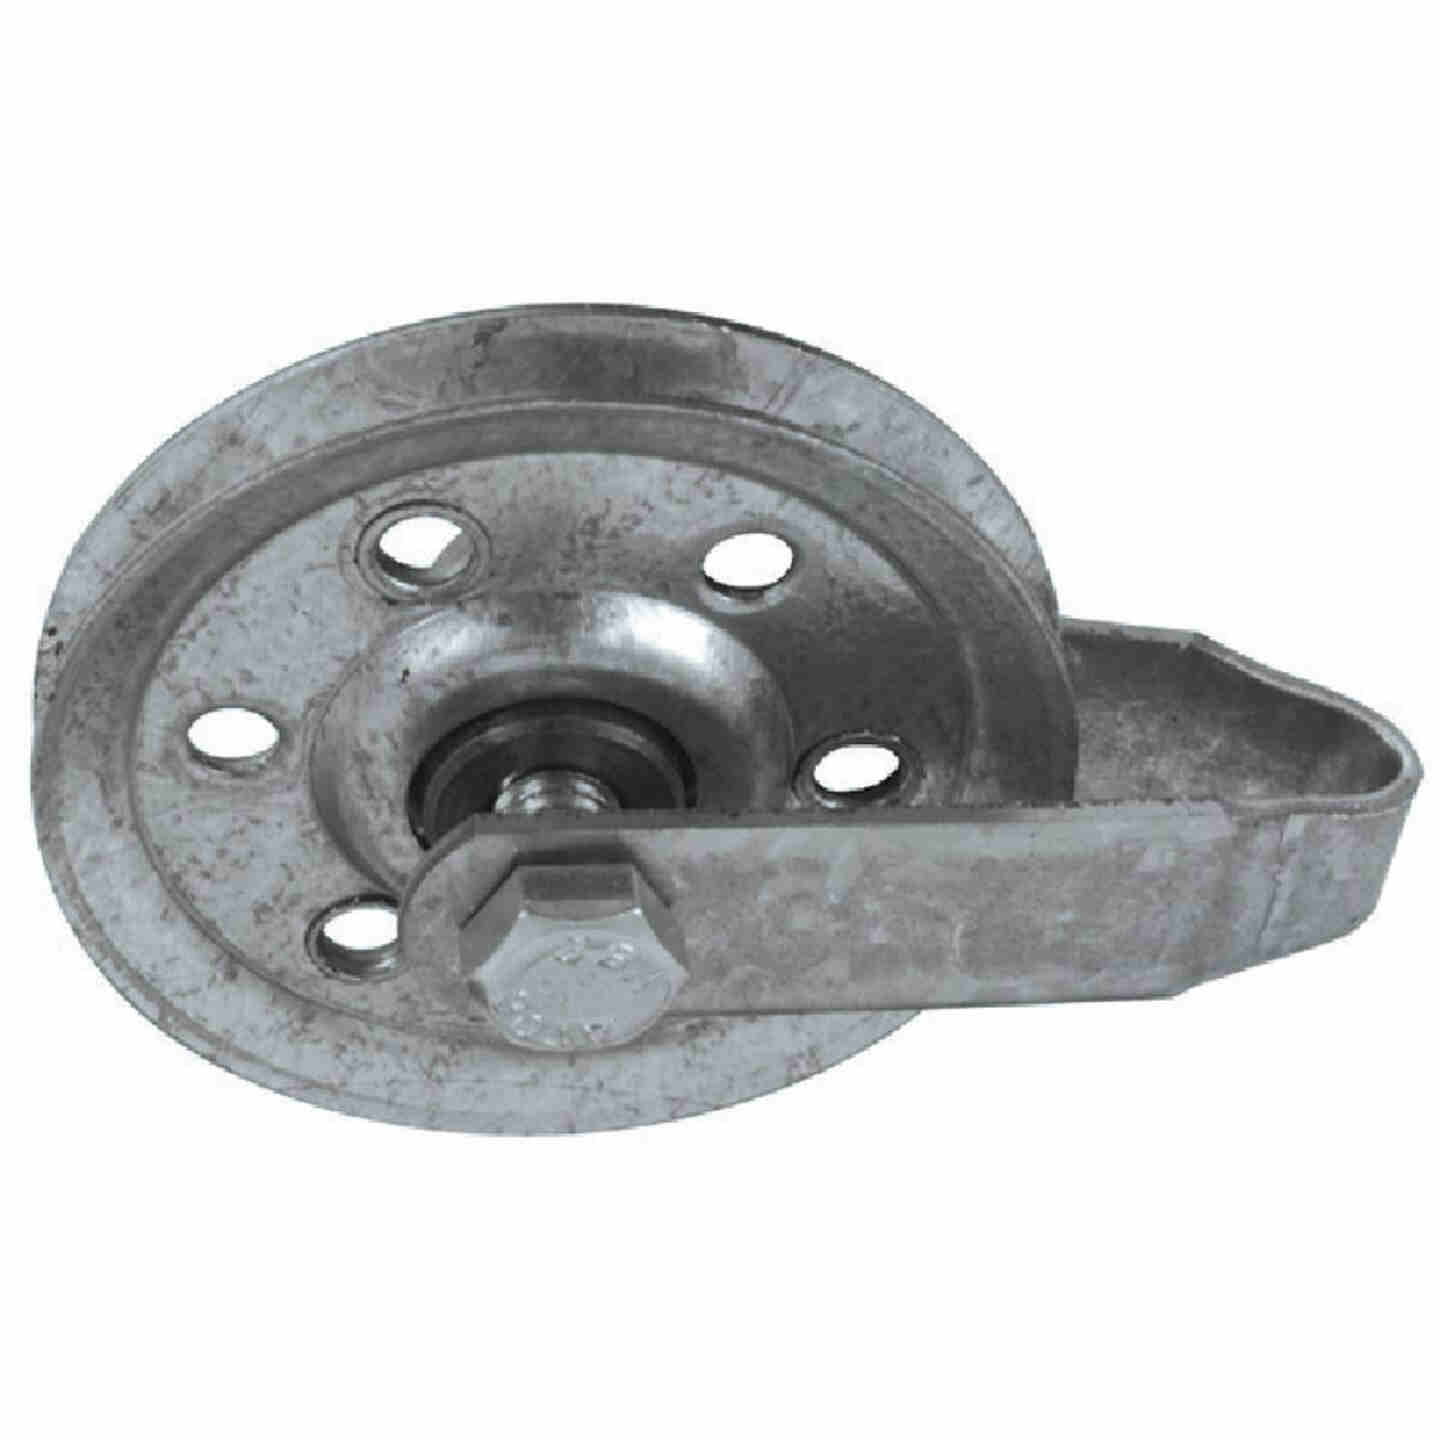 Prime-Line 3 In. Dia. Pulley with Strap and Axle Bolt Image 2